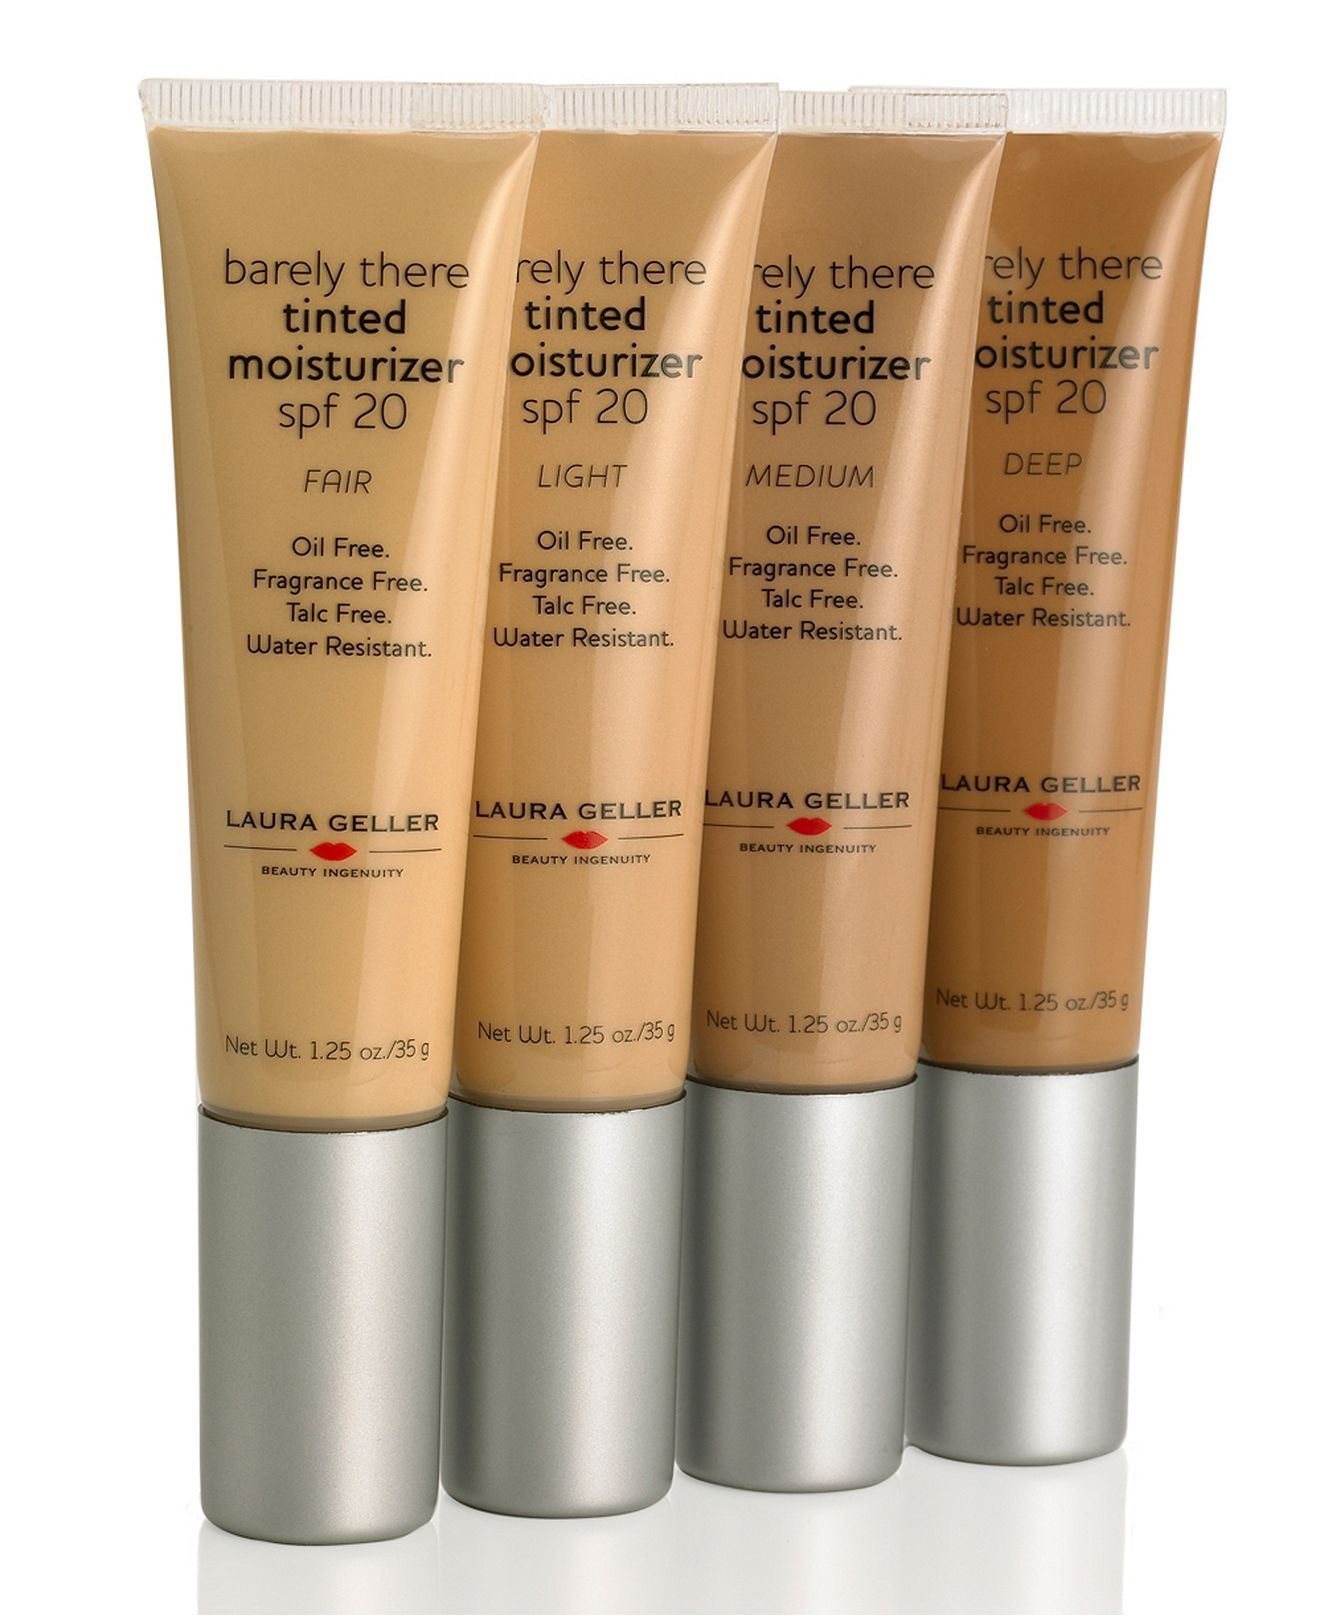 Laura Geller Barely There Tinted Moisturizer Laura